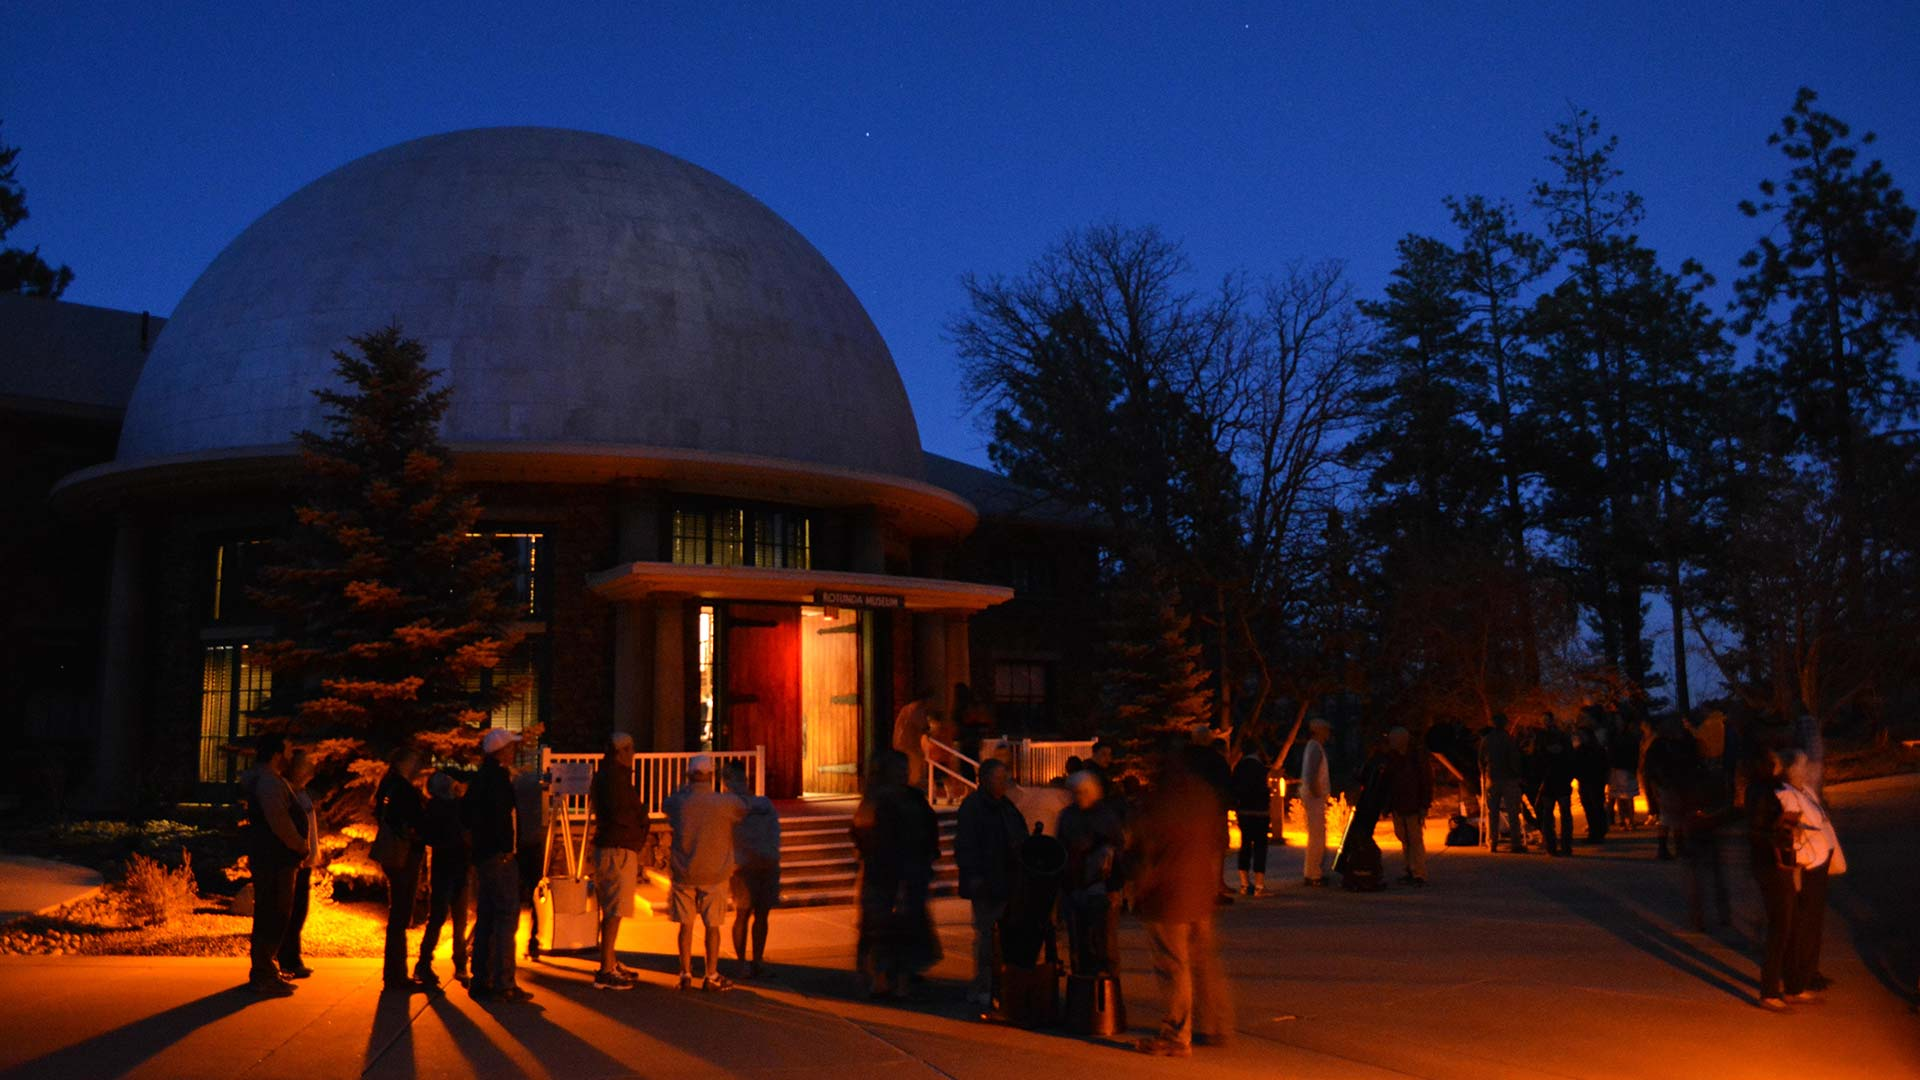 Lowell observatory rotunda